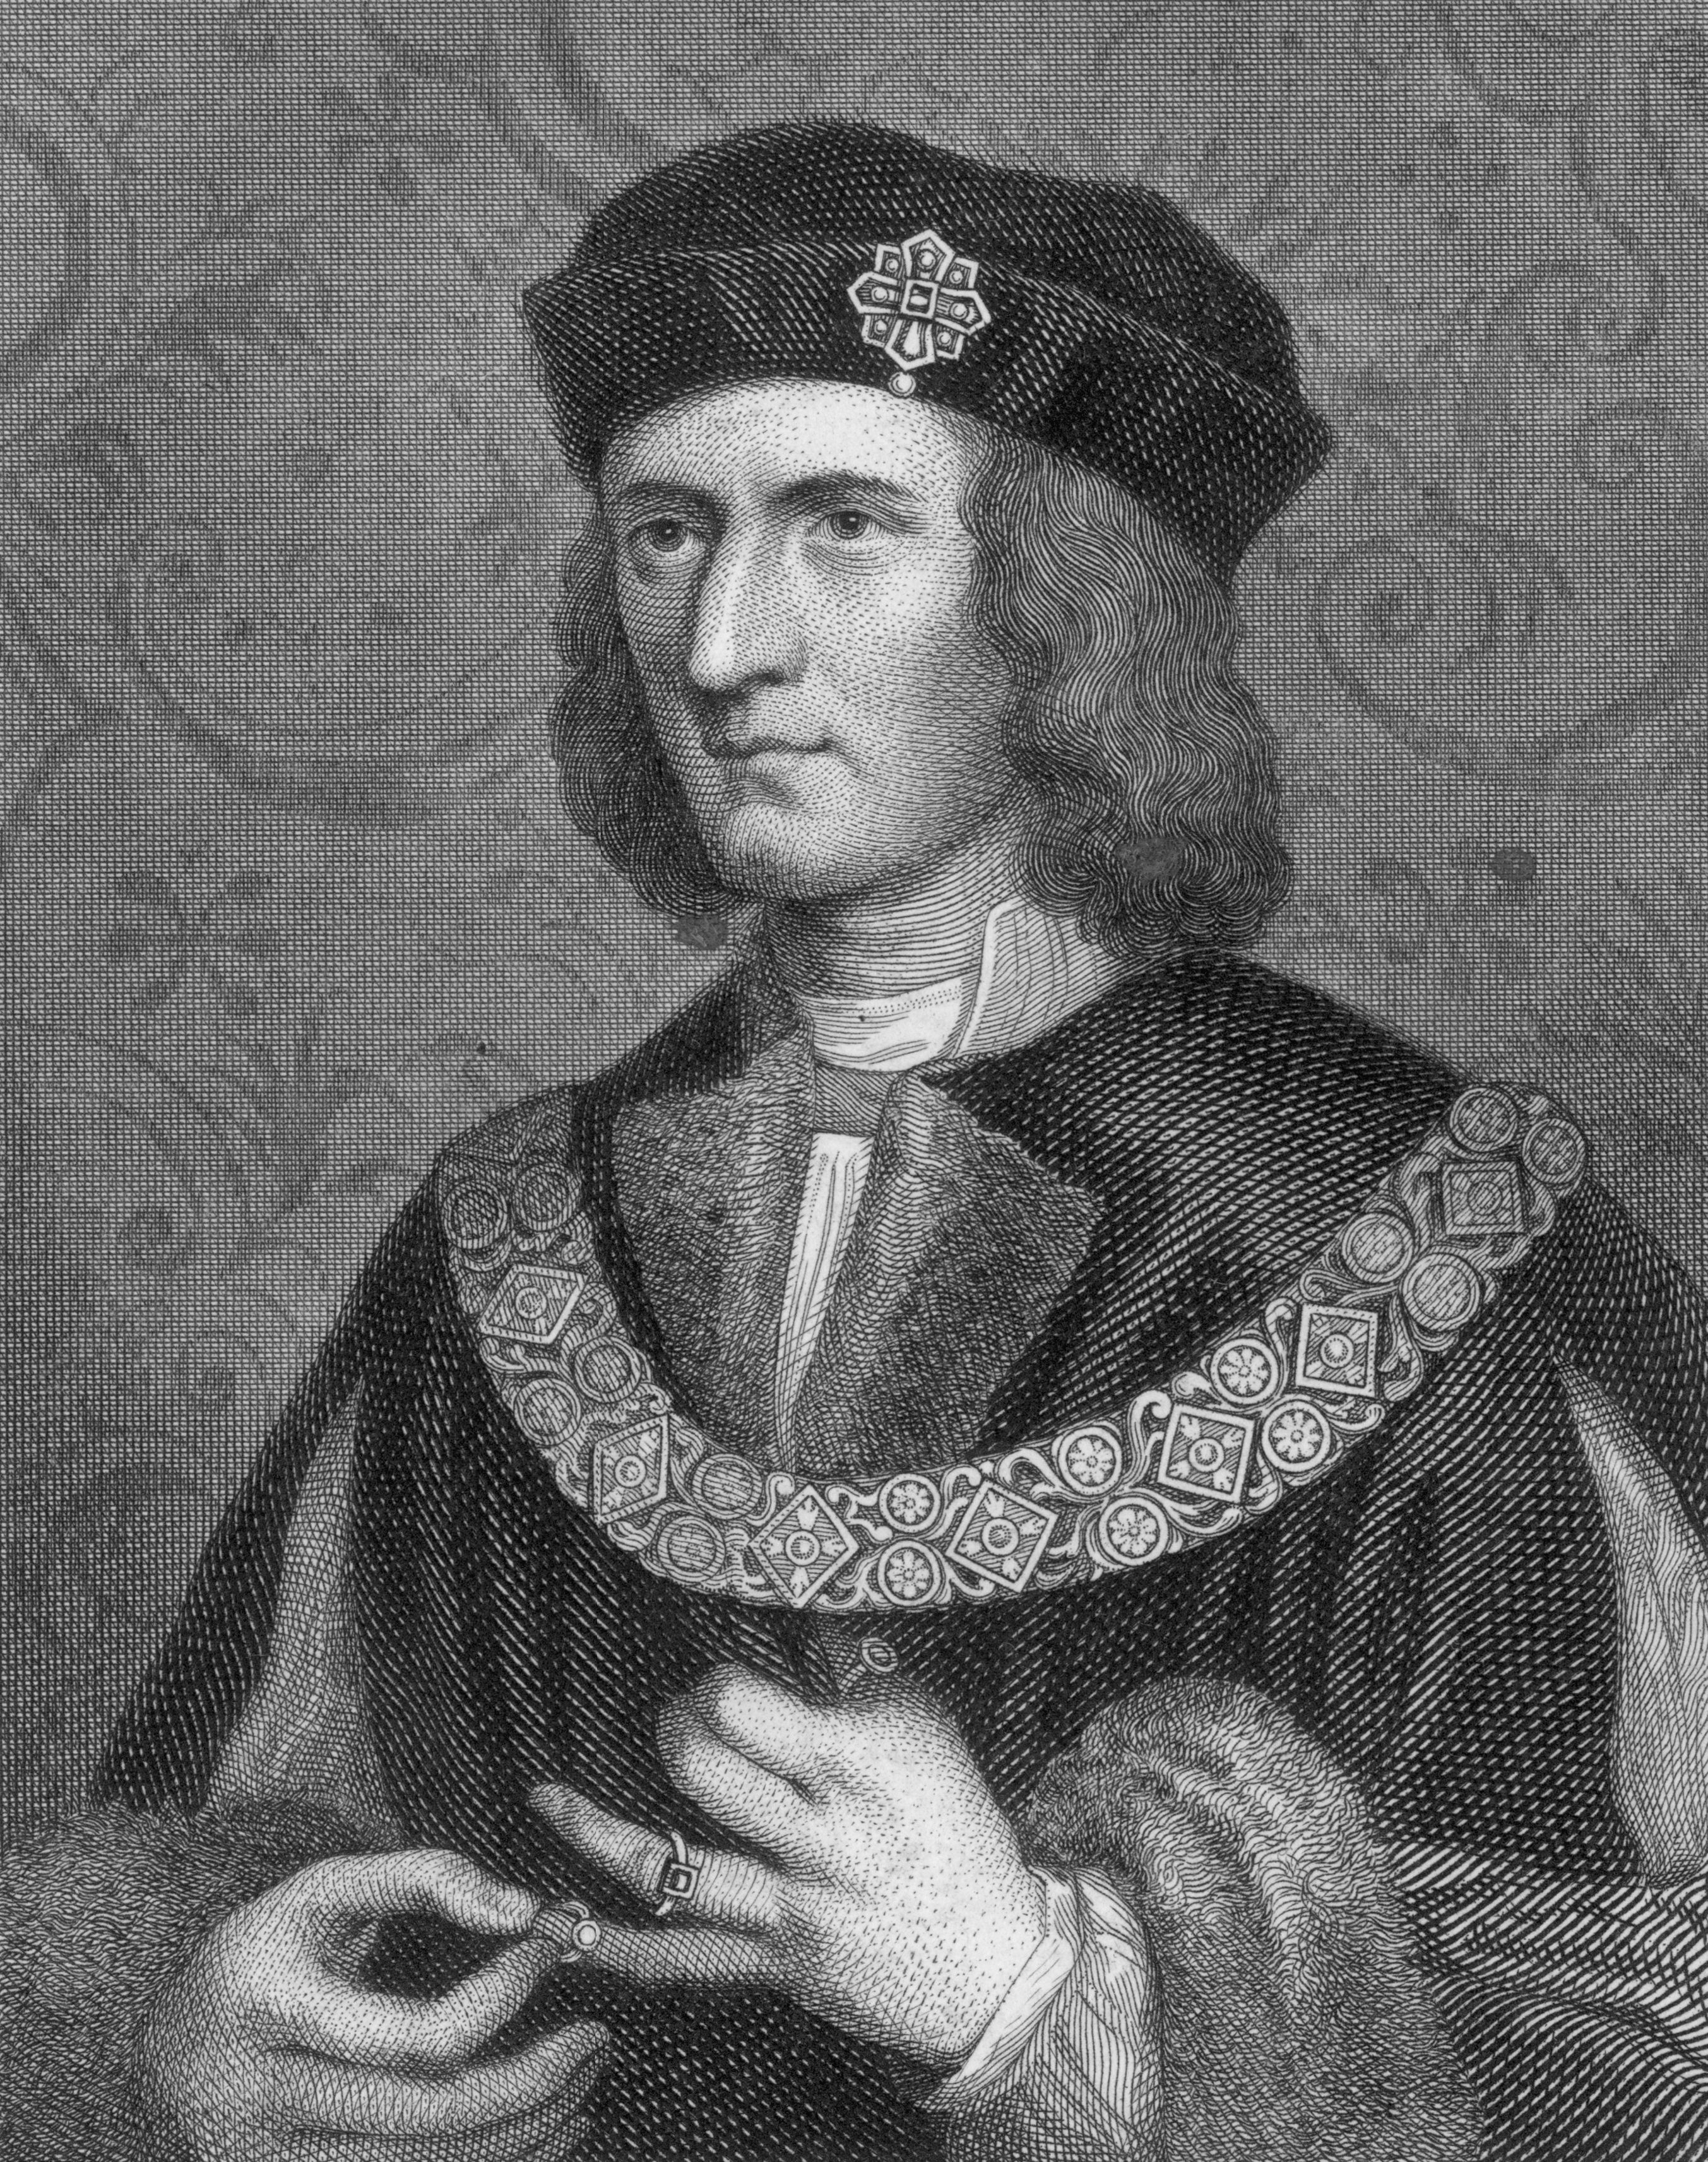 Circa_1480__king_richard_iii__1452_-_1485__wearing_a_chain_of_office_and_playing_with_a_ring_on_his_little_finger.__photo_by_hulton_archivegetty_images_